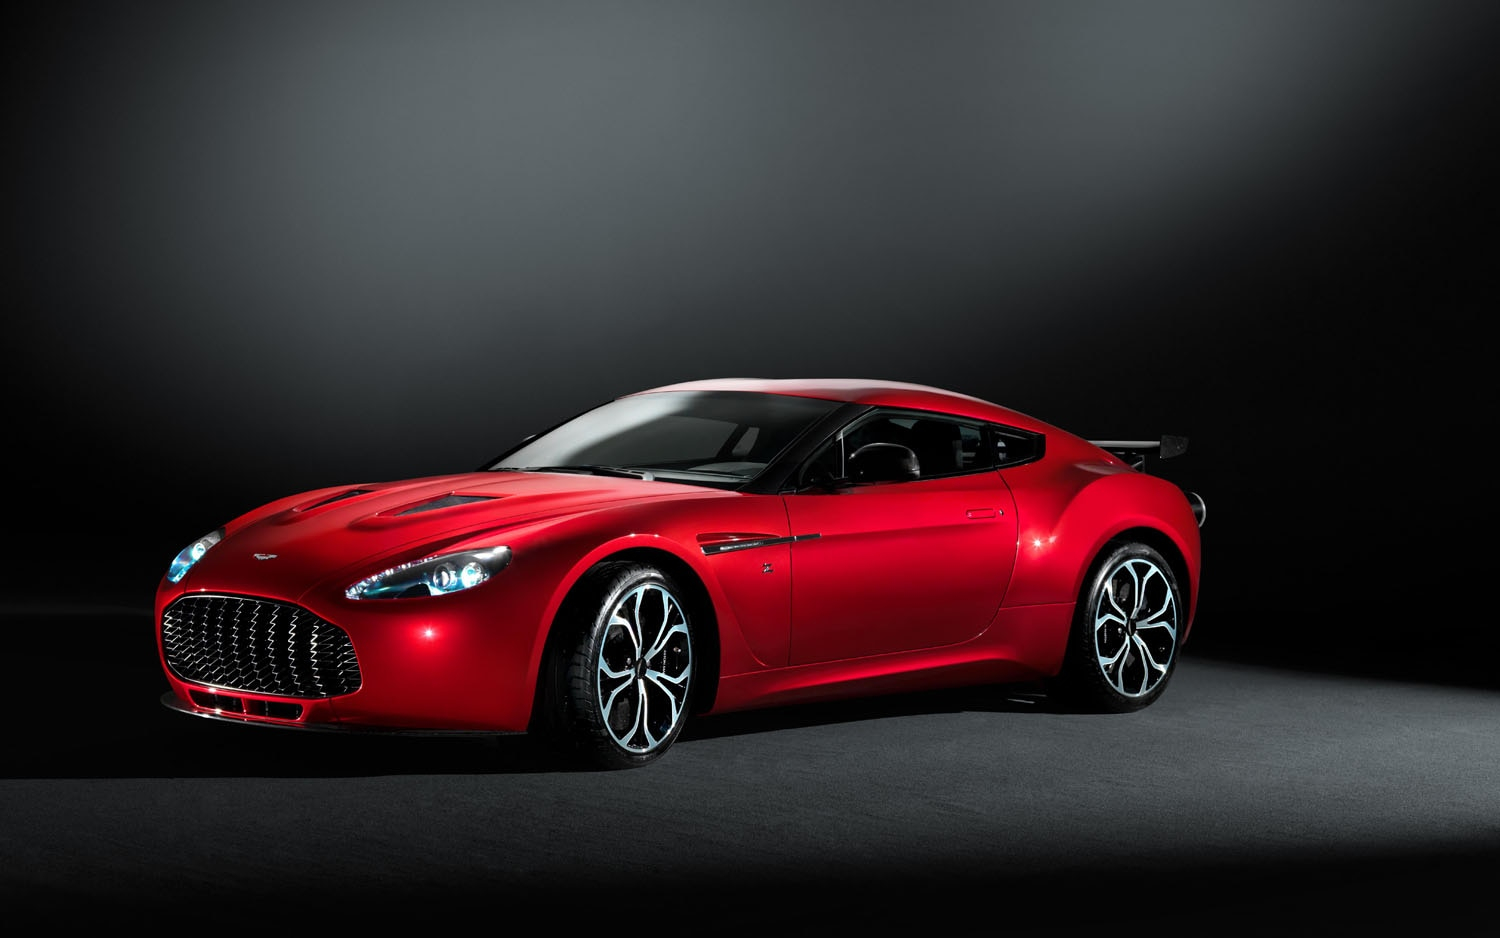 2012 Aston Martin V12 Zagato Front Three Quarter1